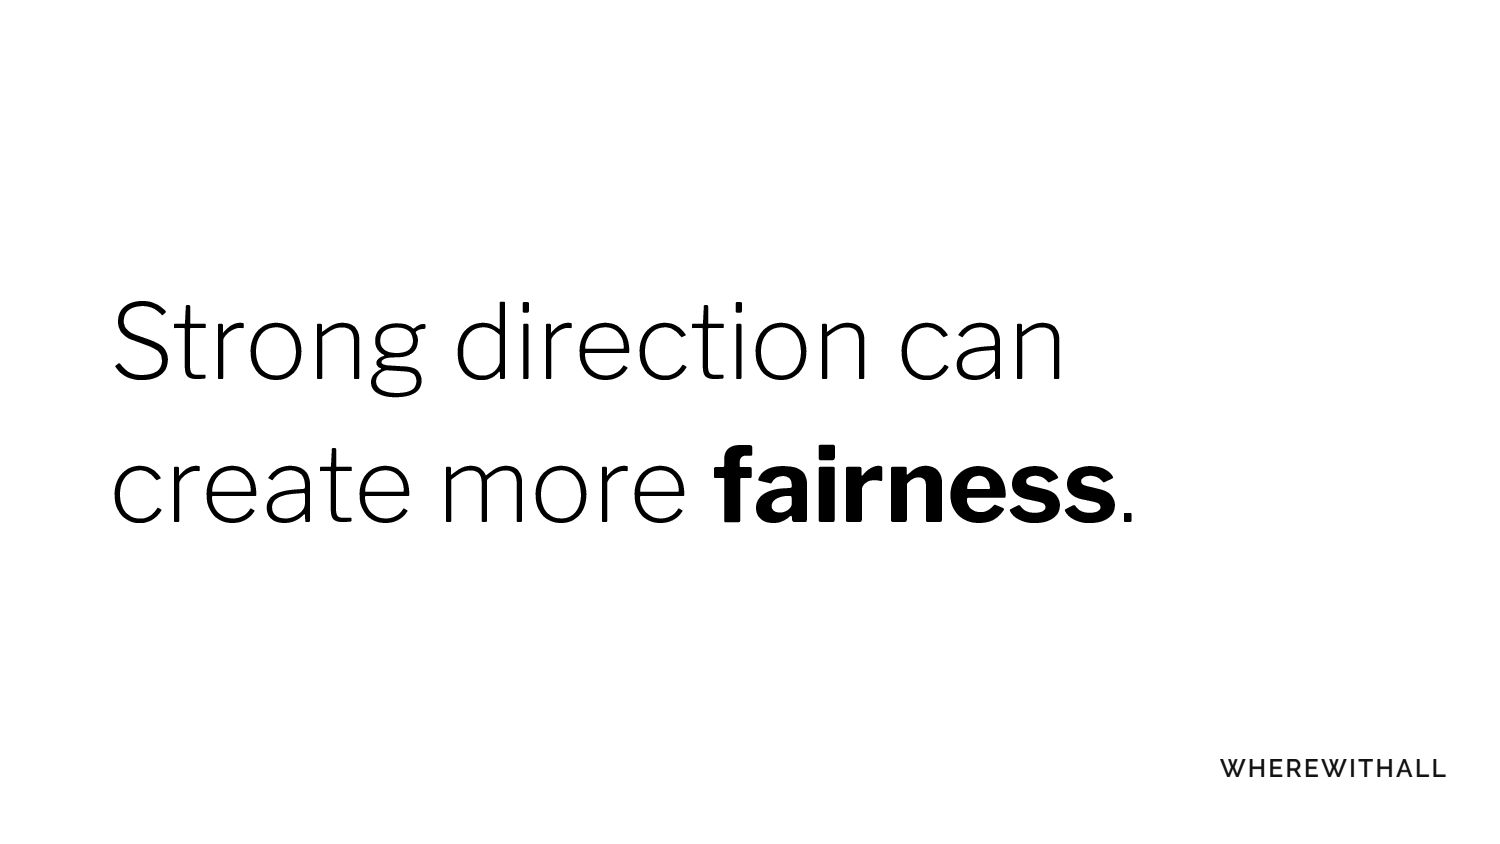 Knowing our default